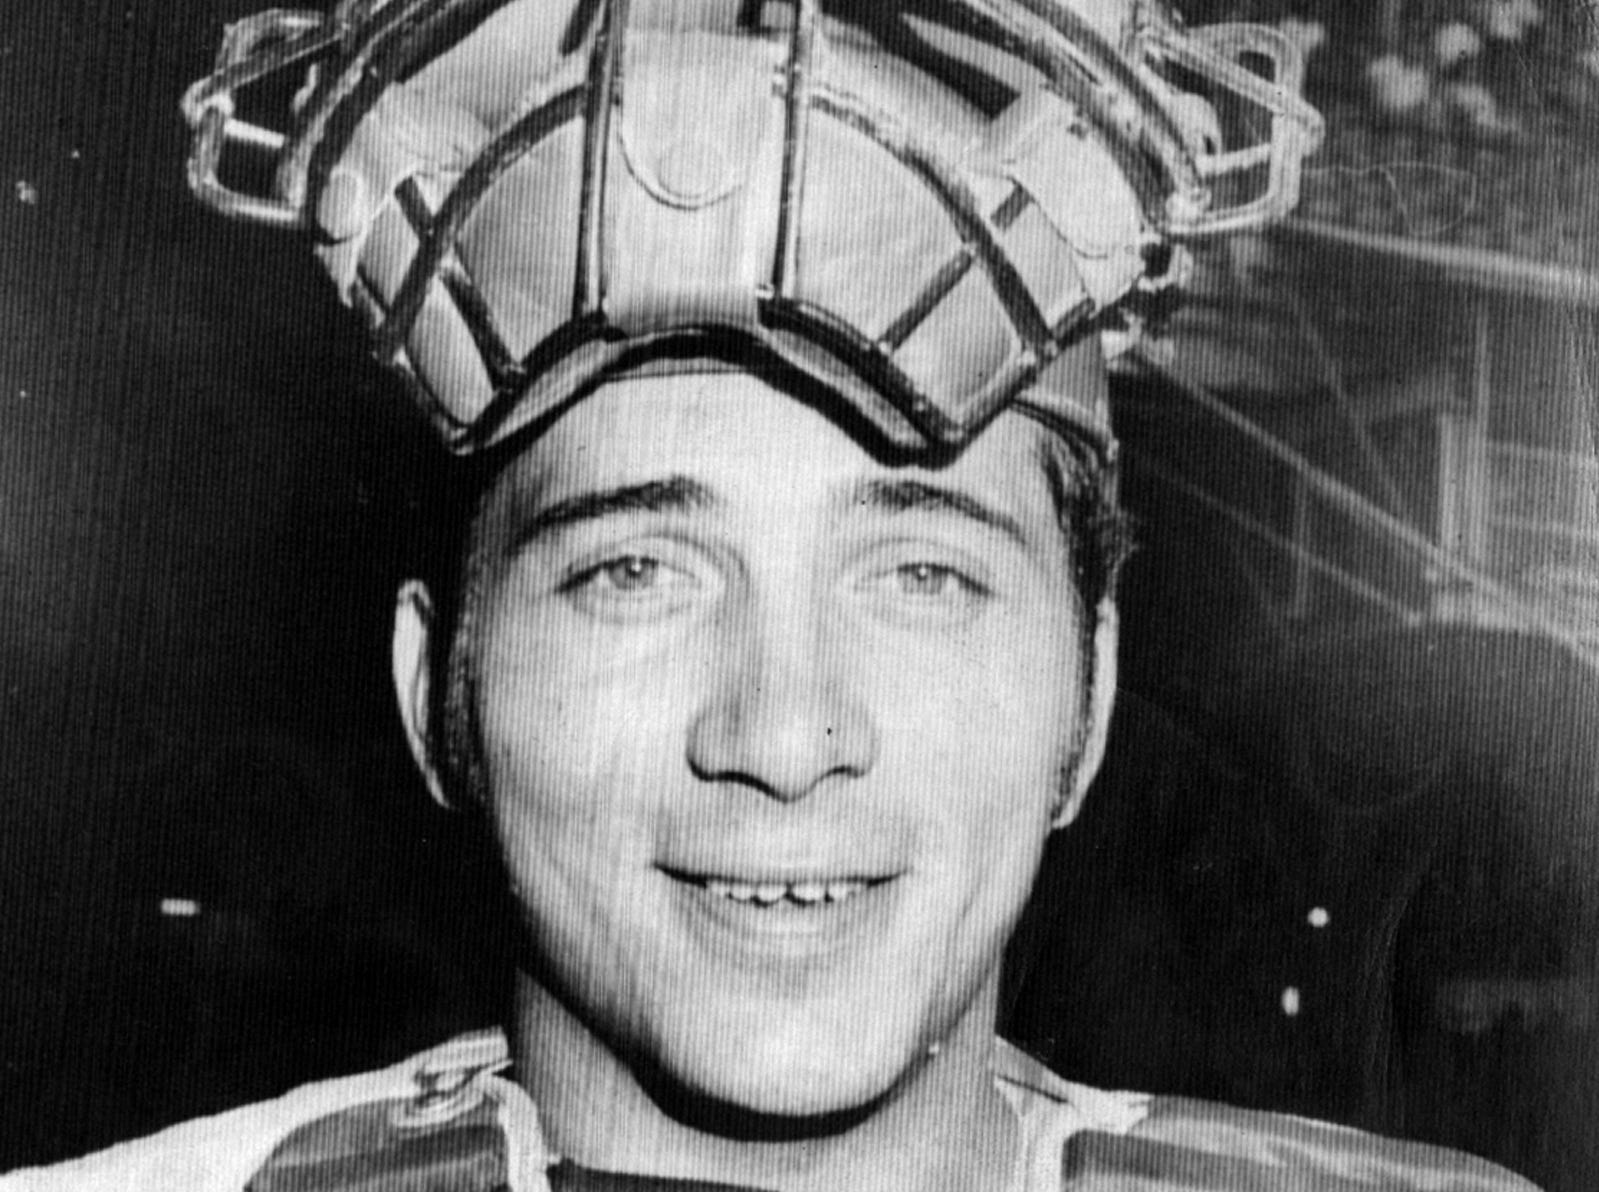 AUGUST 27, 1970: Johnny Bench, Cincinnati Reds standout catcher and hitter, manages a small smile as he poses with face mask perched atop helmet looking like a crown before start of Wednesday night game with Philadelphia Phillies in Philadelphia. In interview before game Bench said the only thing he wants more than success is the ability to handle it. AP Photo scanned August 7, 2013